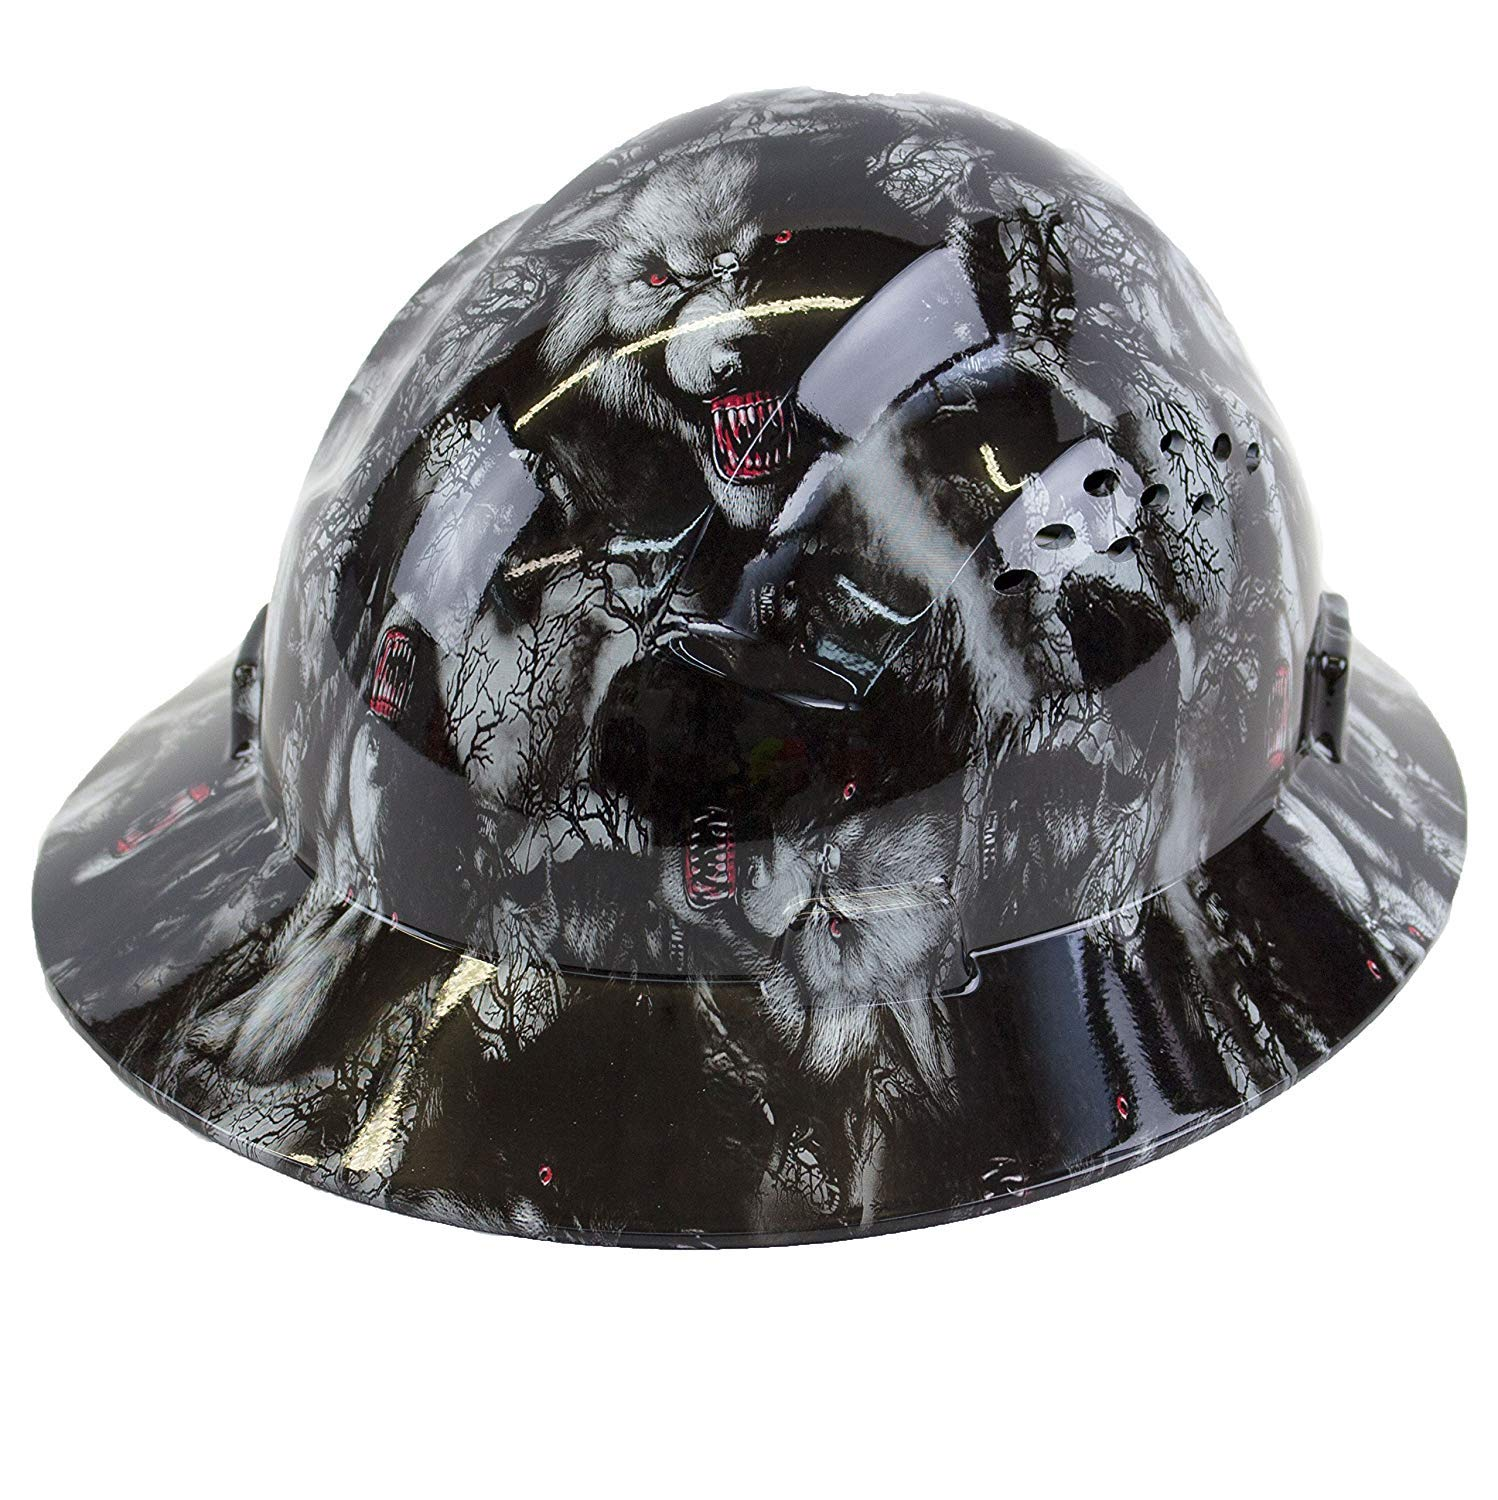 Troy Safety RK-HP44-WOLVES Patterned Hard Hat Full Brim Style with 4 Point Ratchet Suspension (Wolves) by Troy Safety